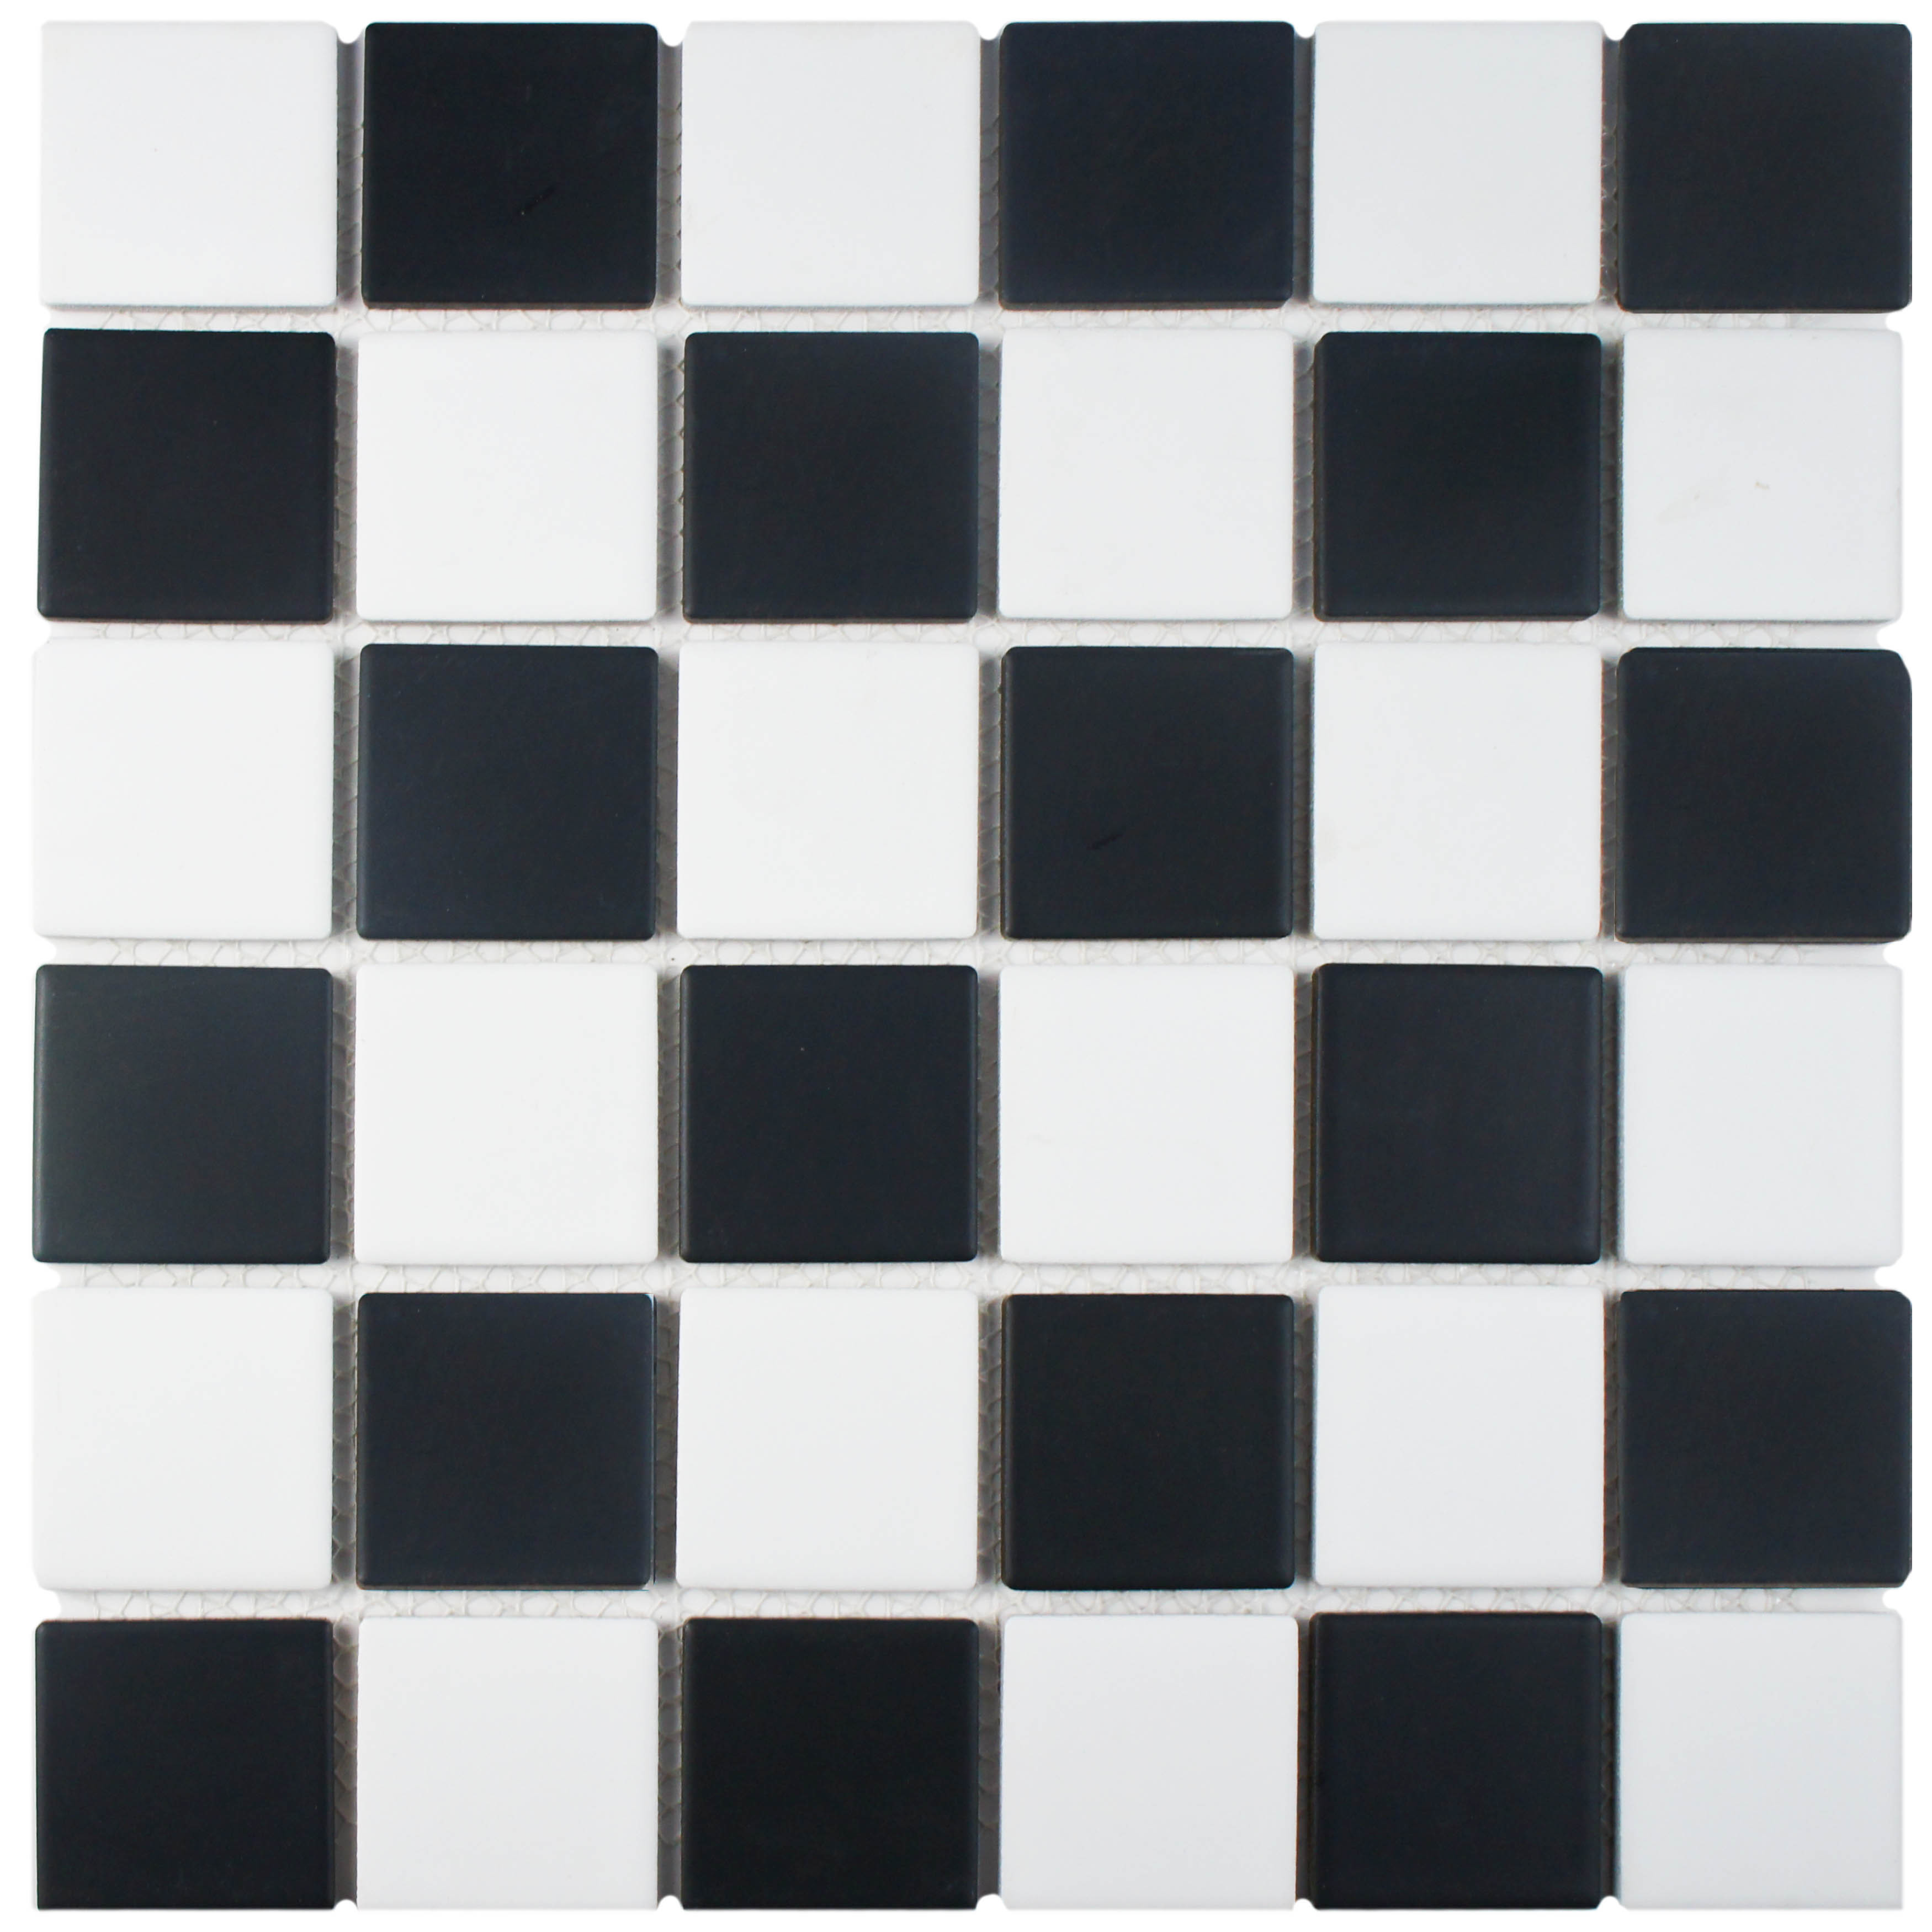 Somertile 125x125 knight matte black white checkerboard somertile 125x125 knight matte black white checkerboard porcelain floor and wall tile case of 10 free shipping today overstock 17443534 dailygadgetfo Choice Image